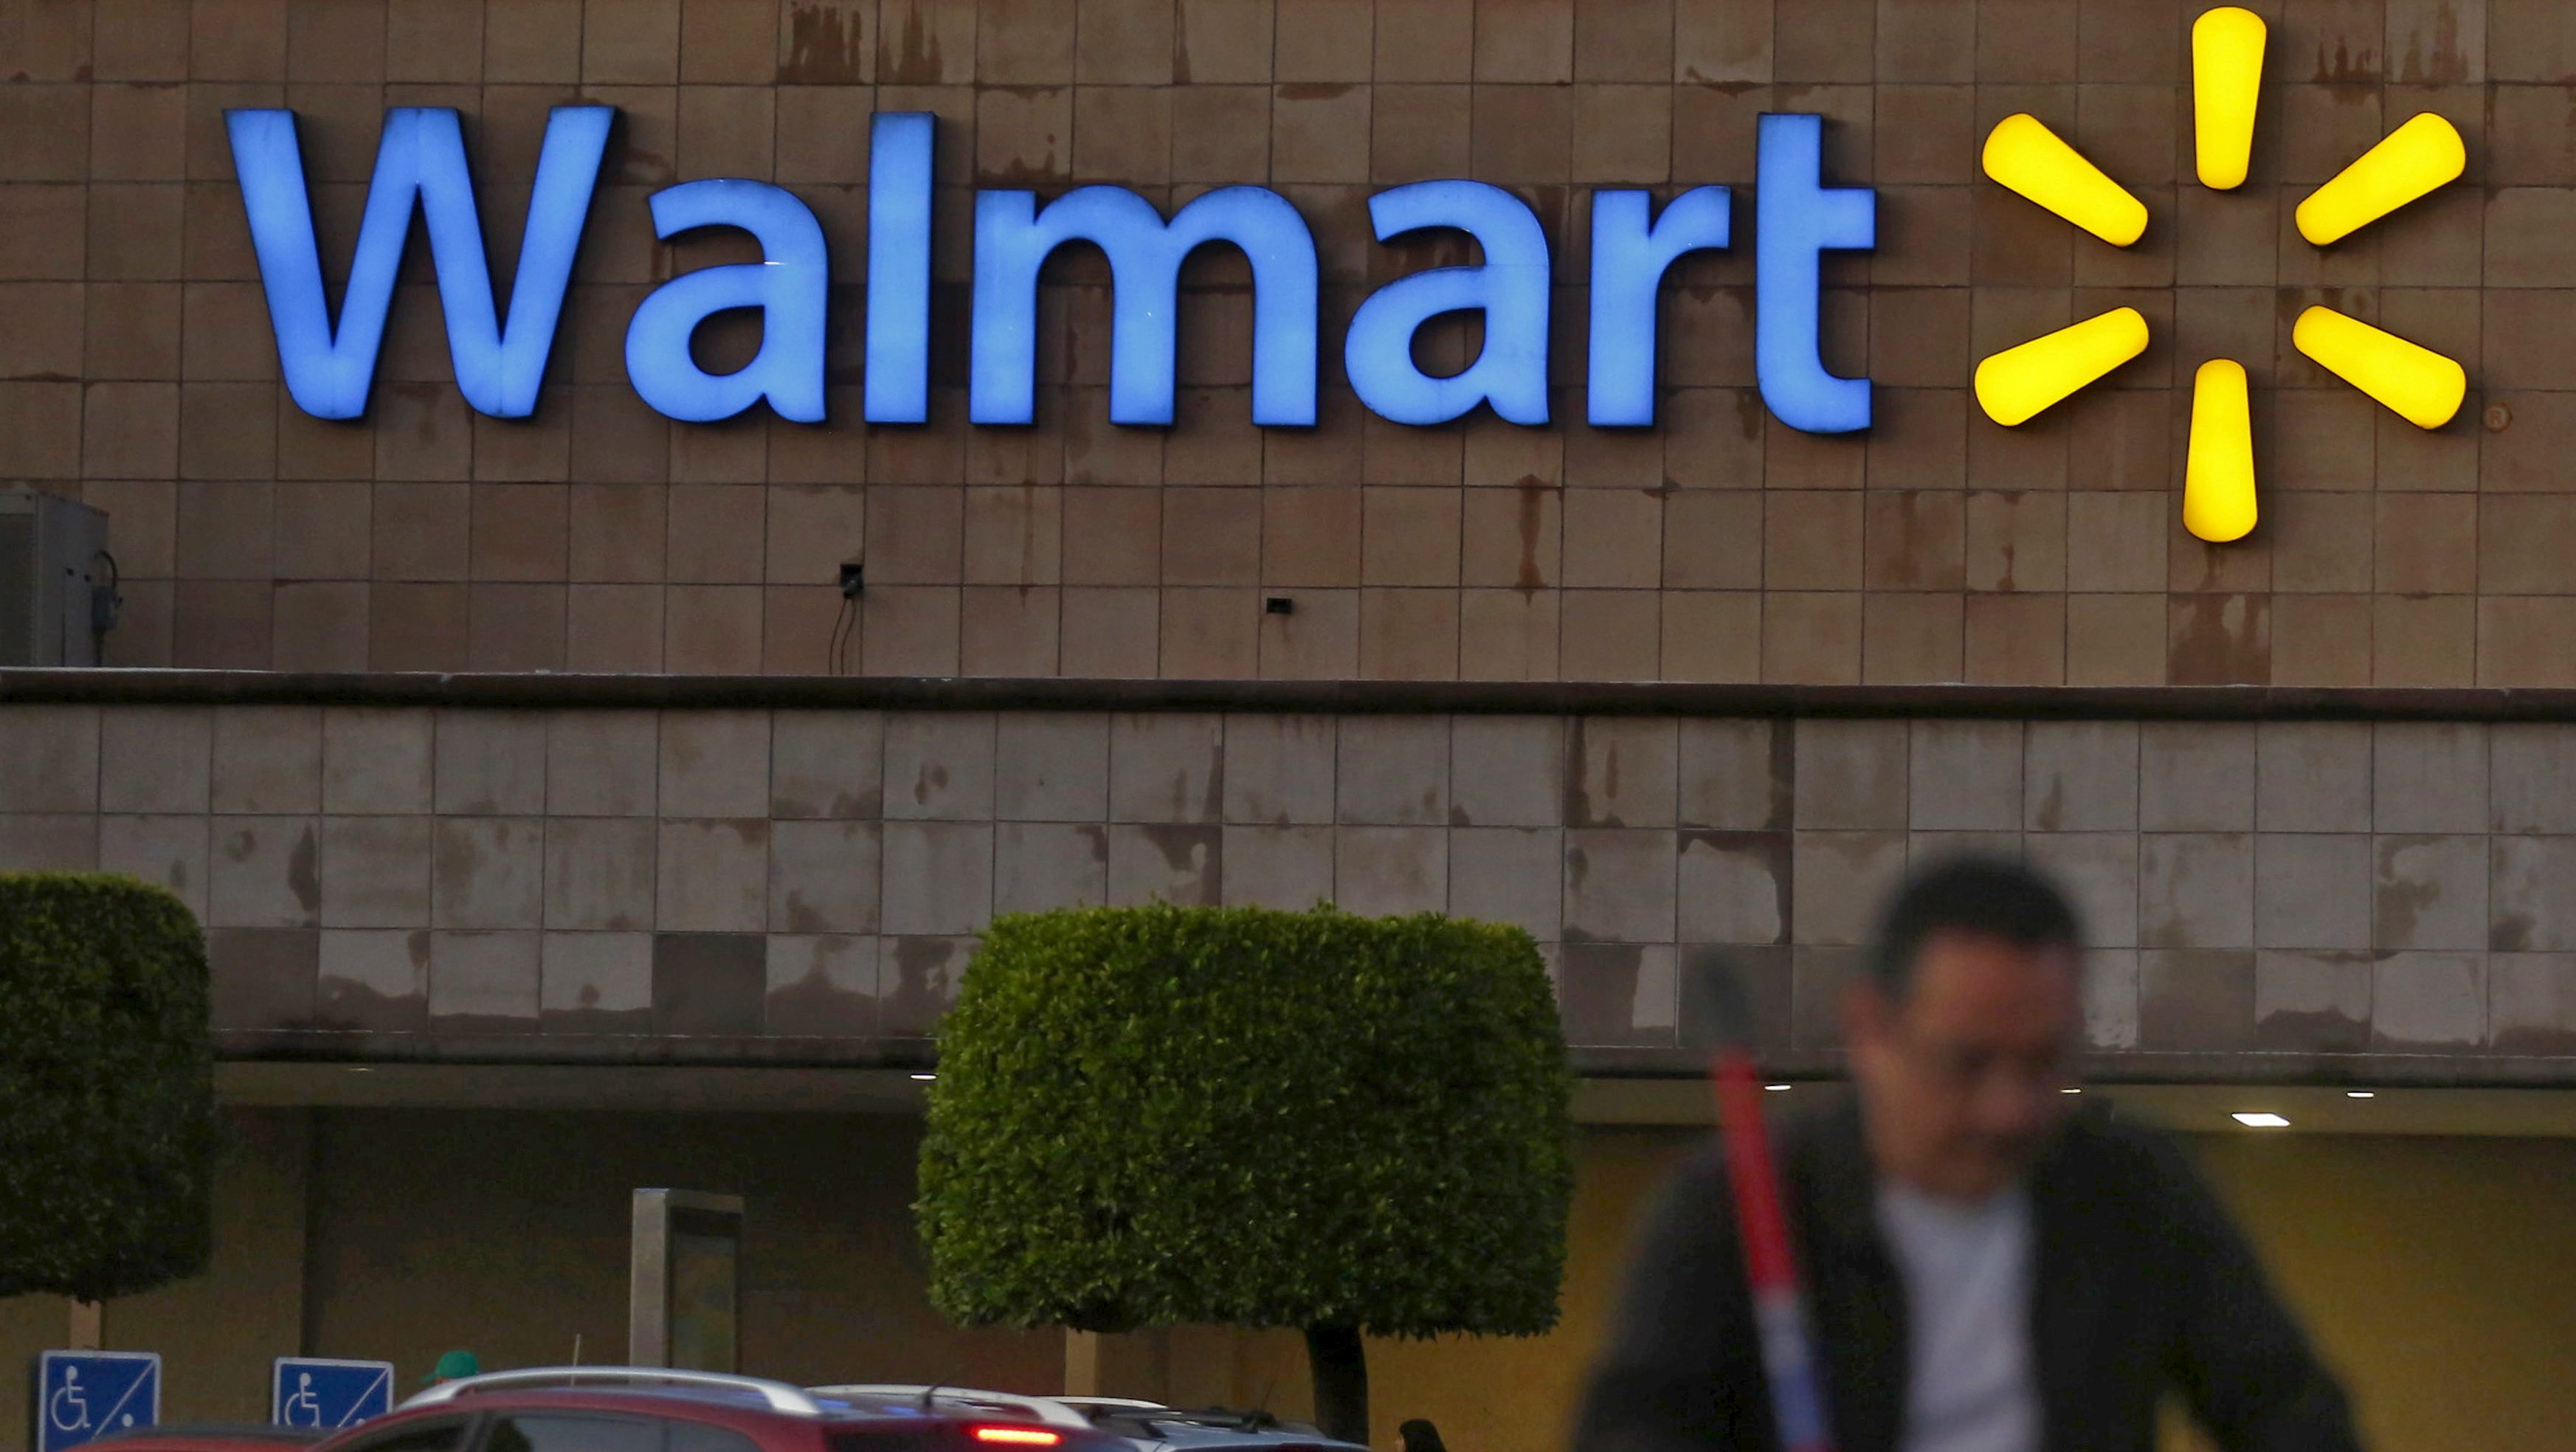 A shopper pushes a cart in front of a Wal-Mart store in Mexico City